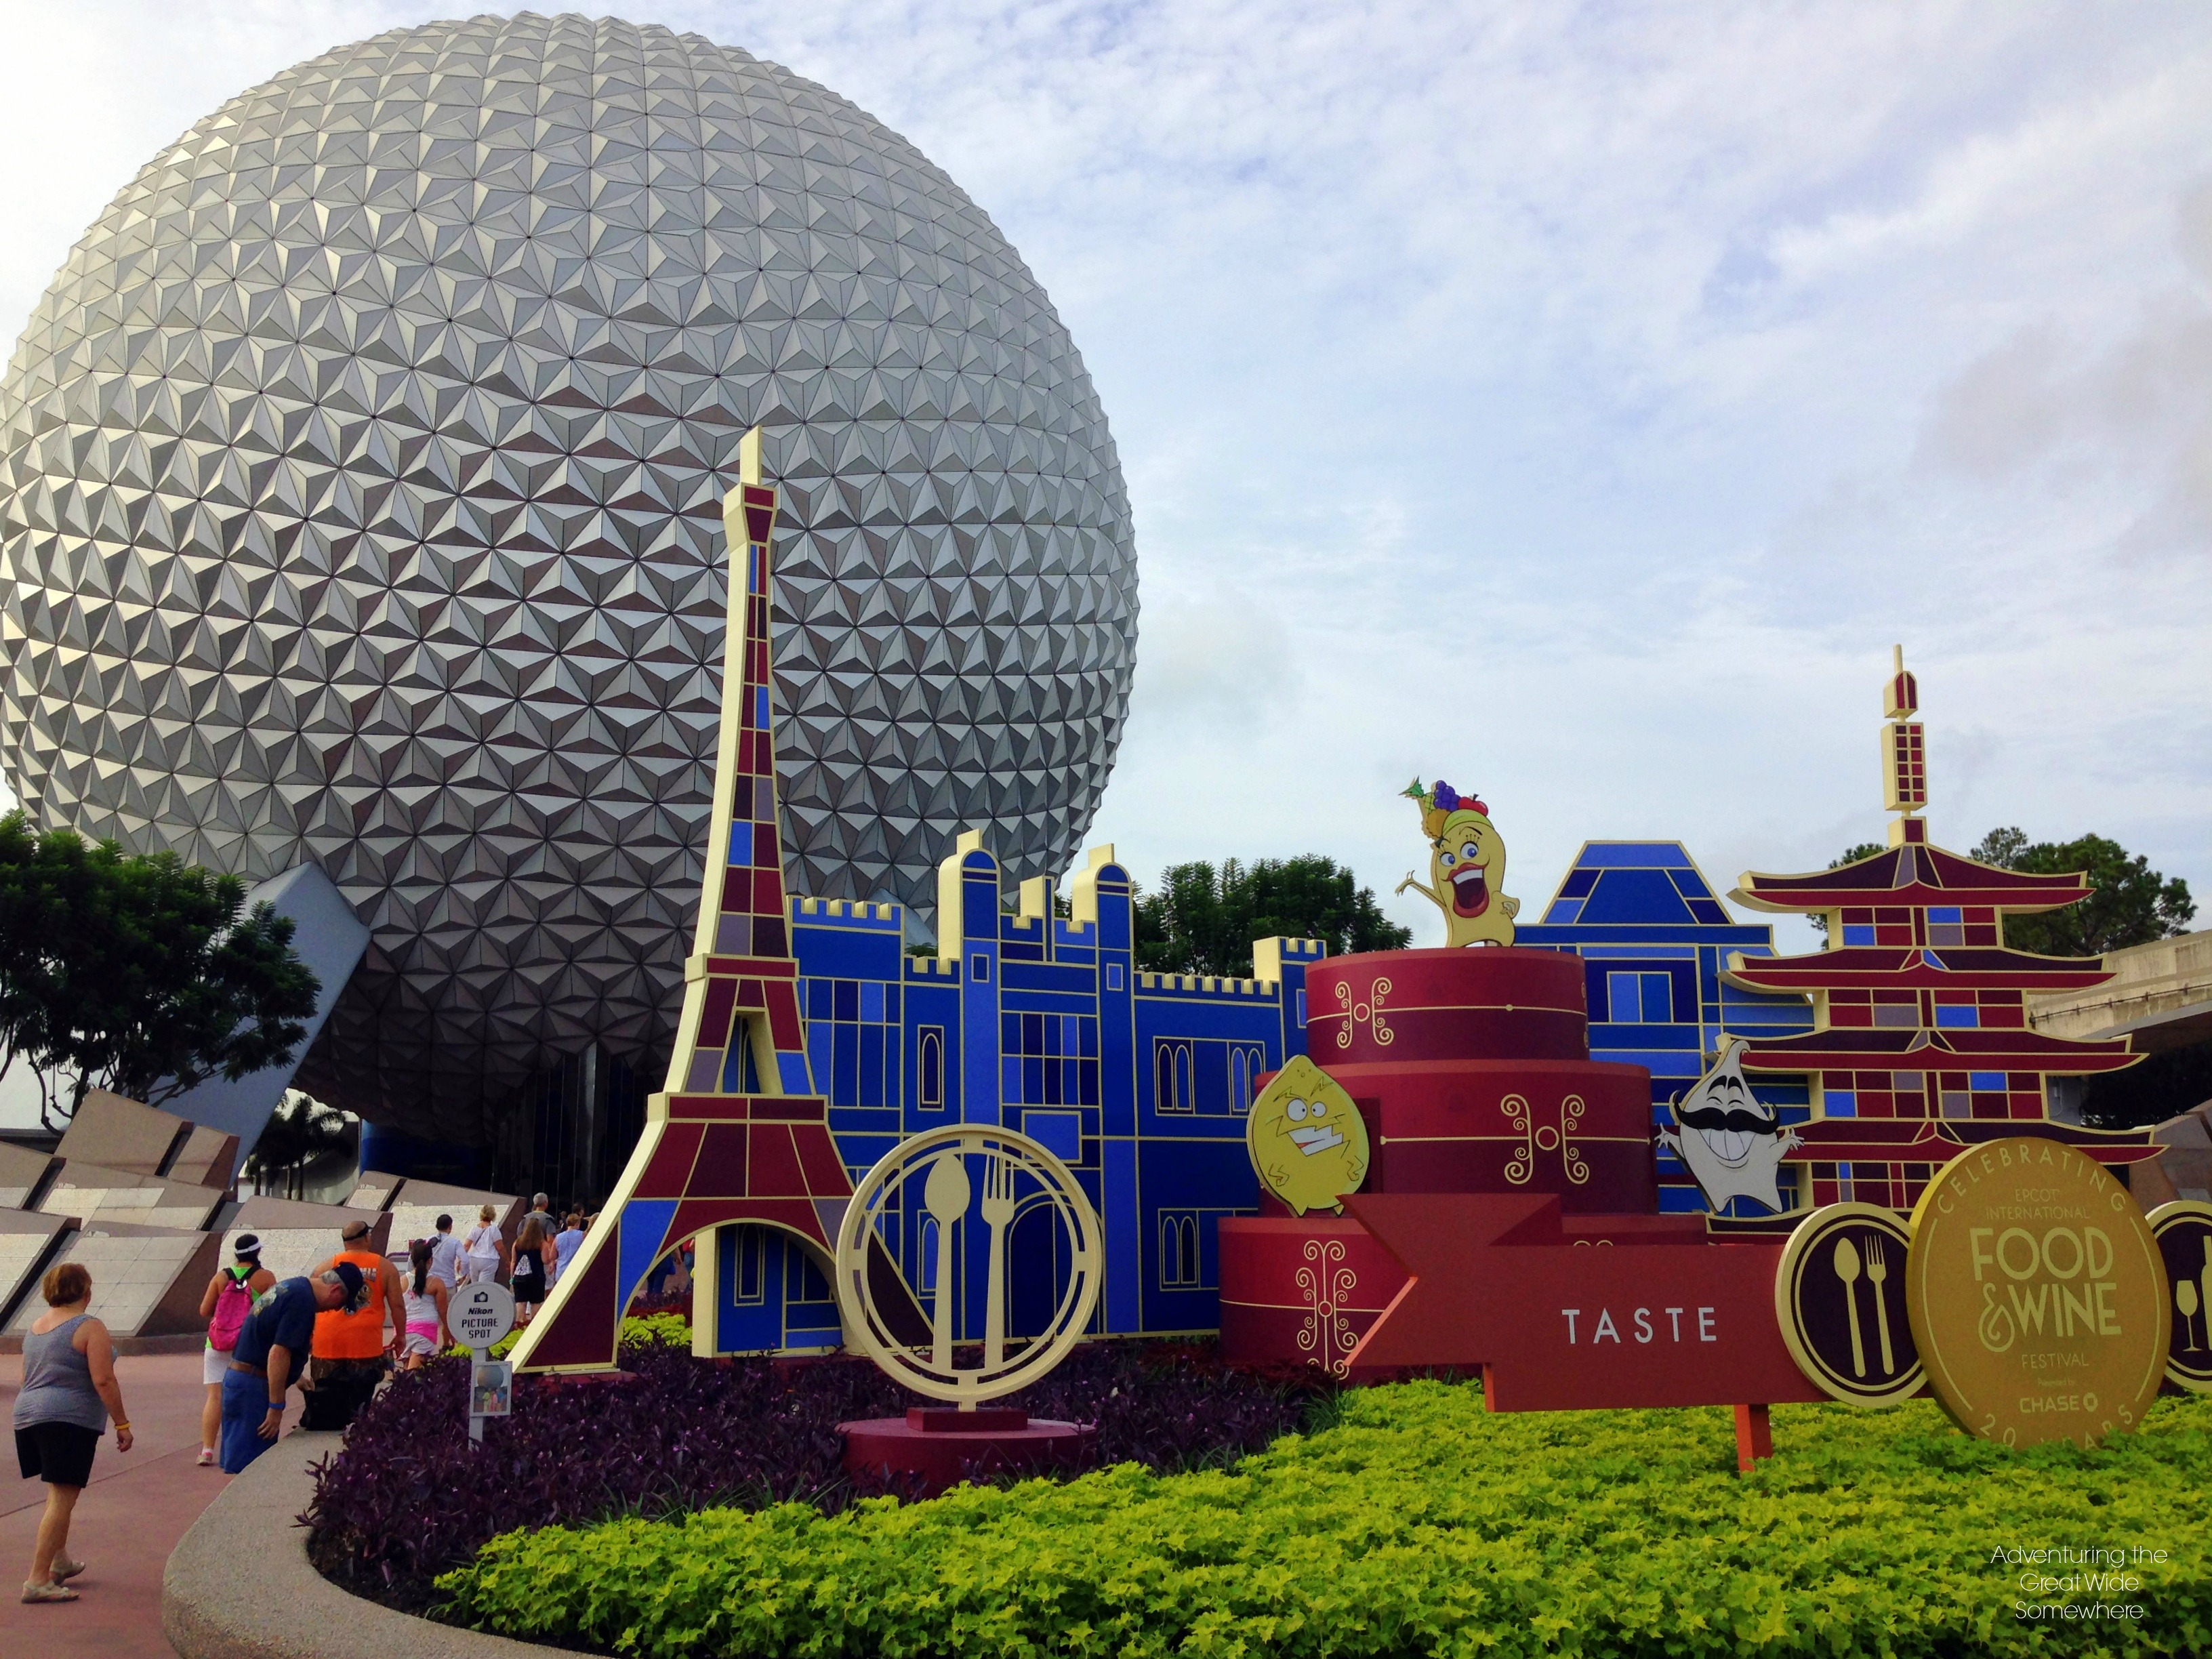 Taste the World at the 2015 Epcot International Food & Wine Festival